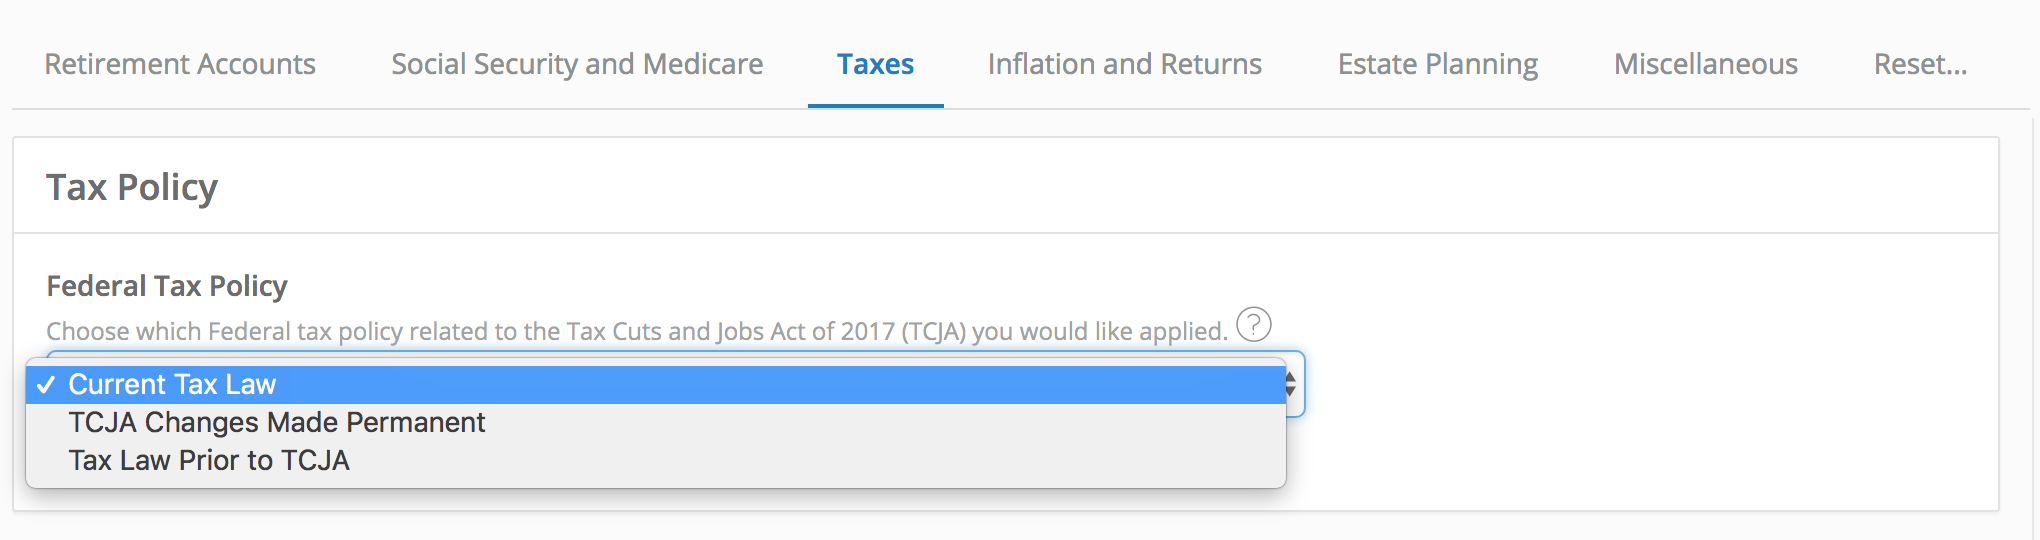 Tax Policy Setting on Settings and Assumptions Taxes Tab